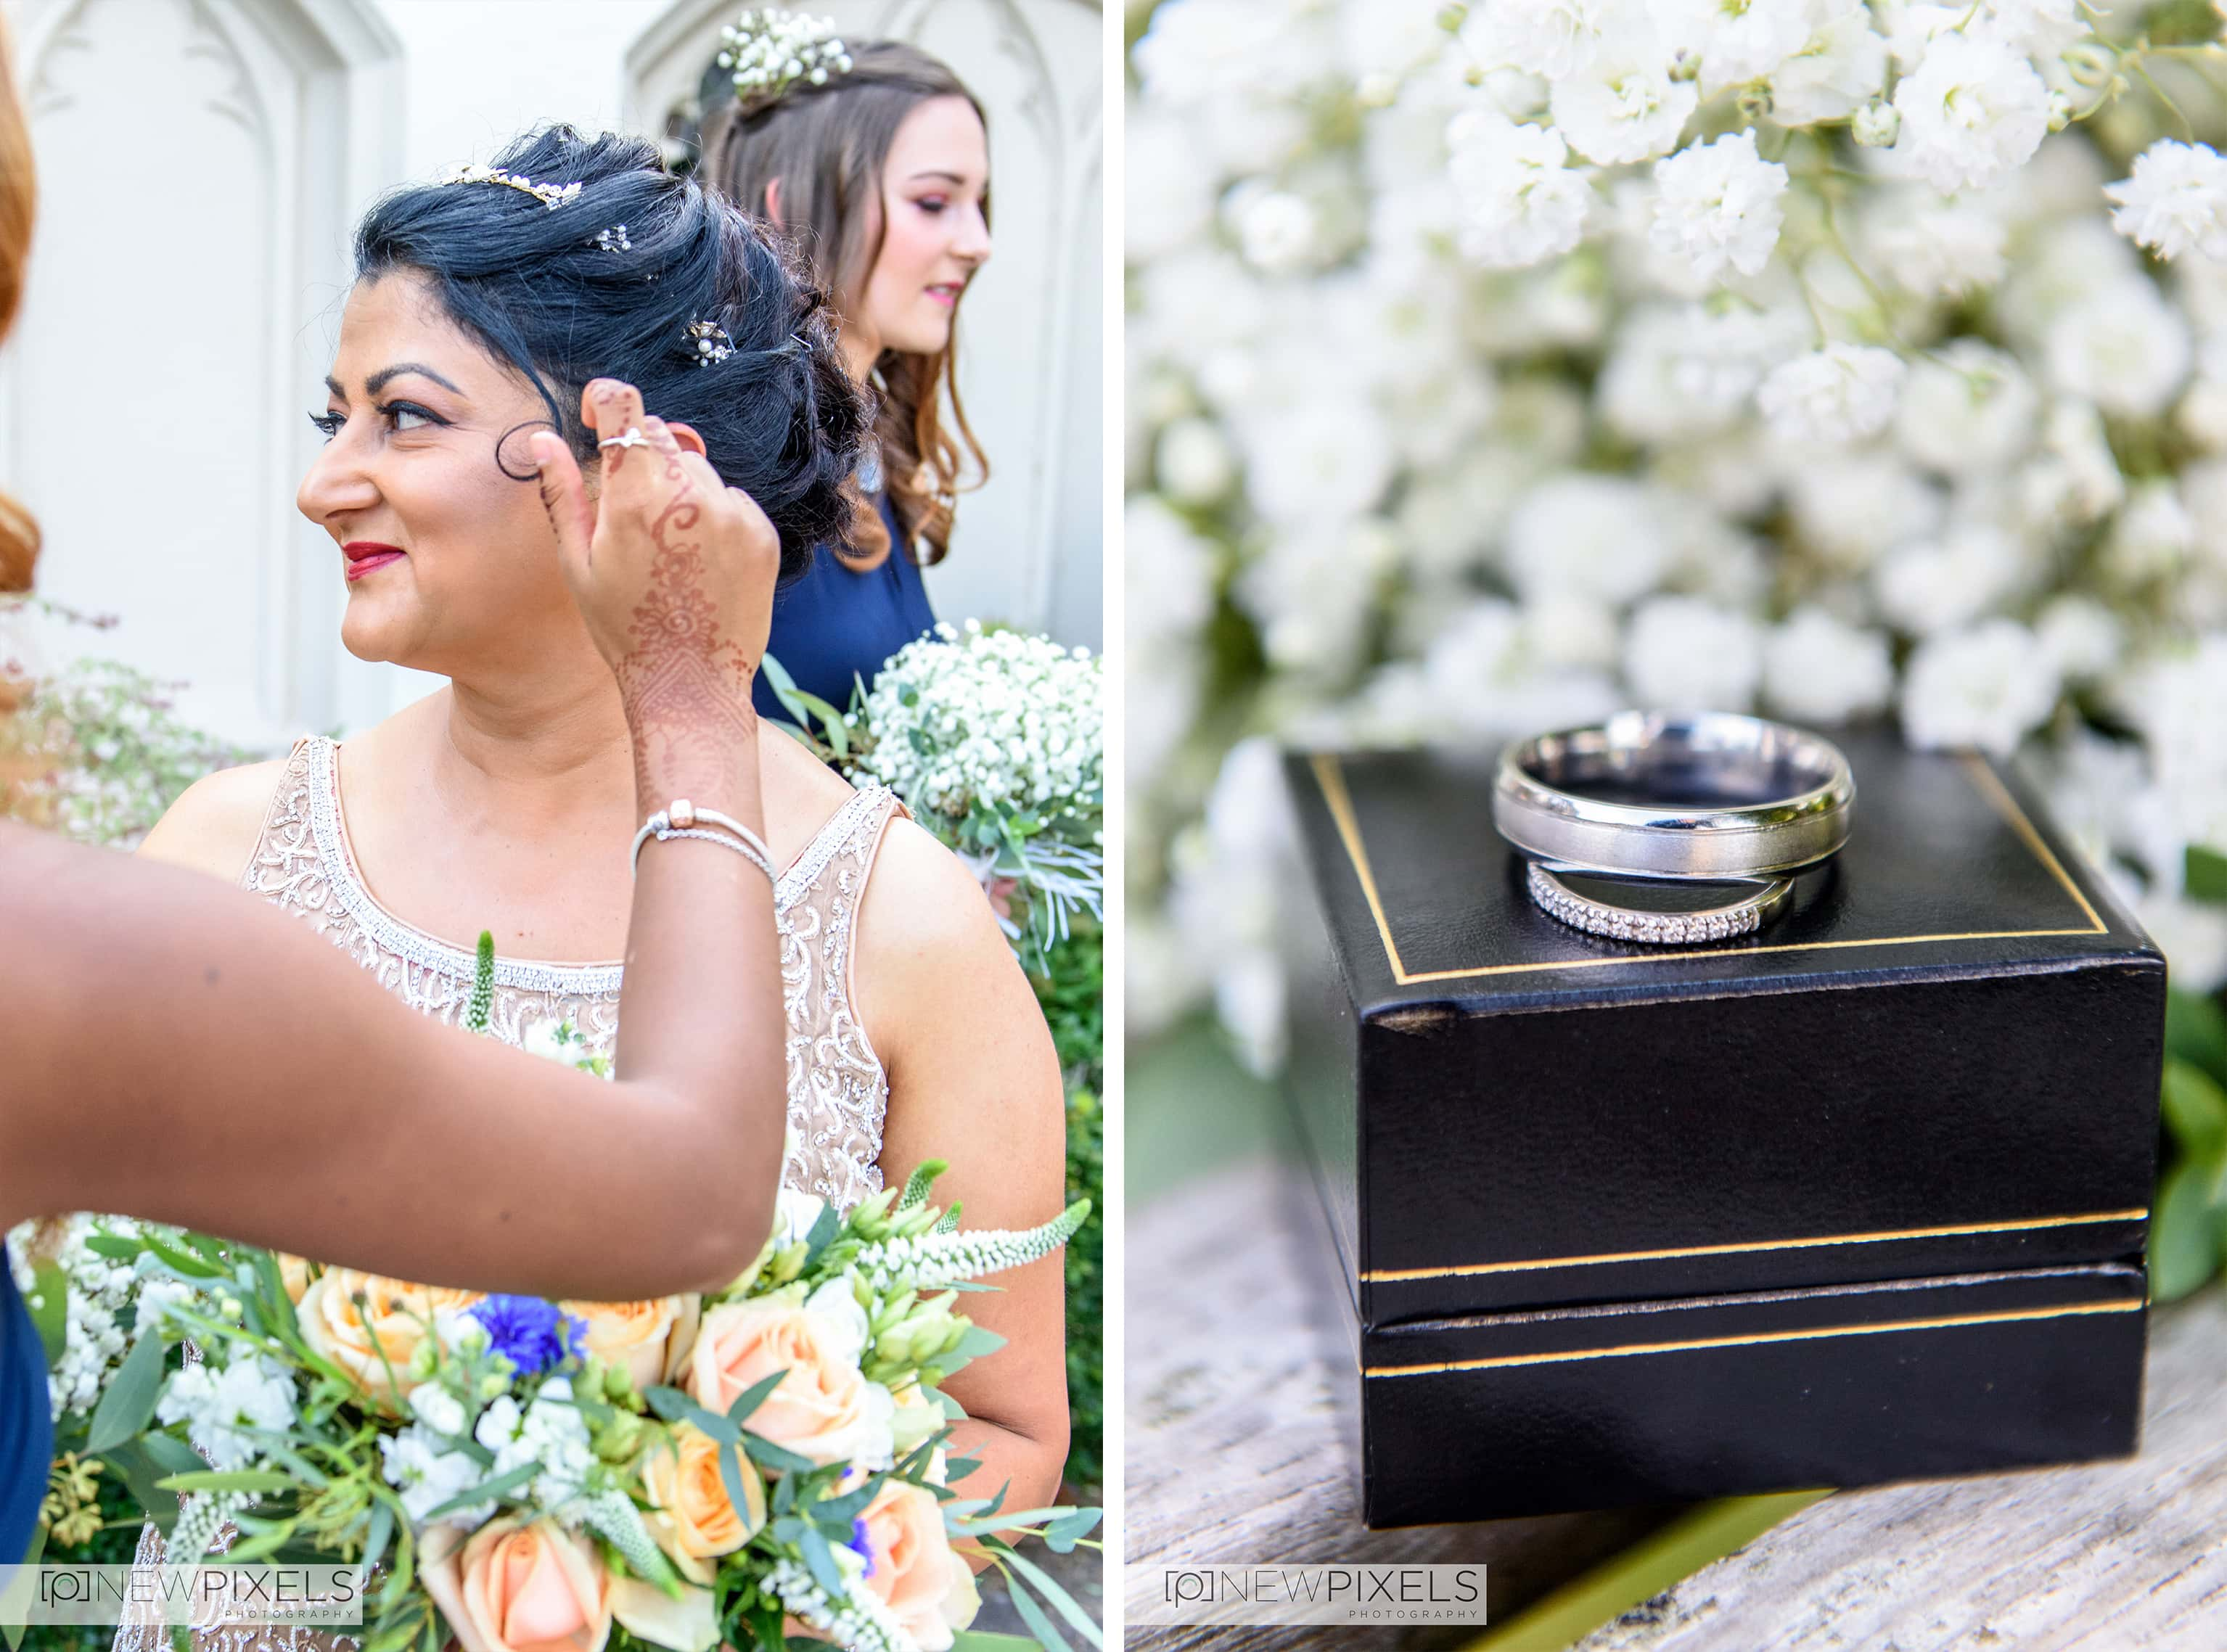 Ware Wedding Photography New Pixels Photography-1